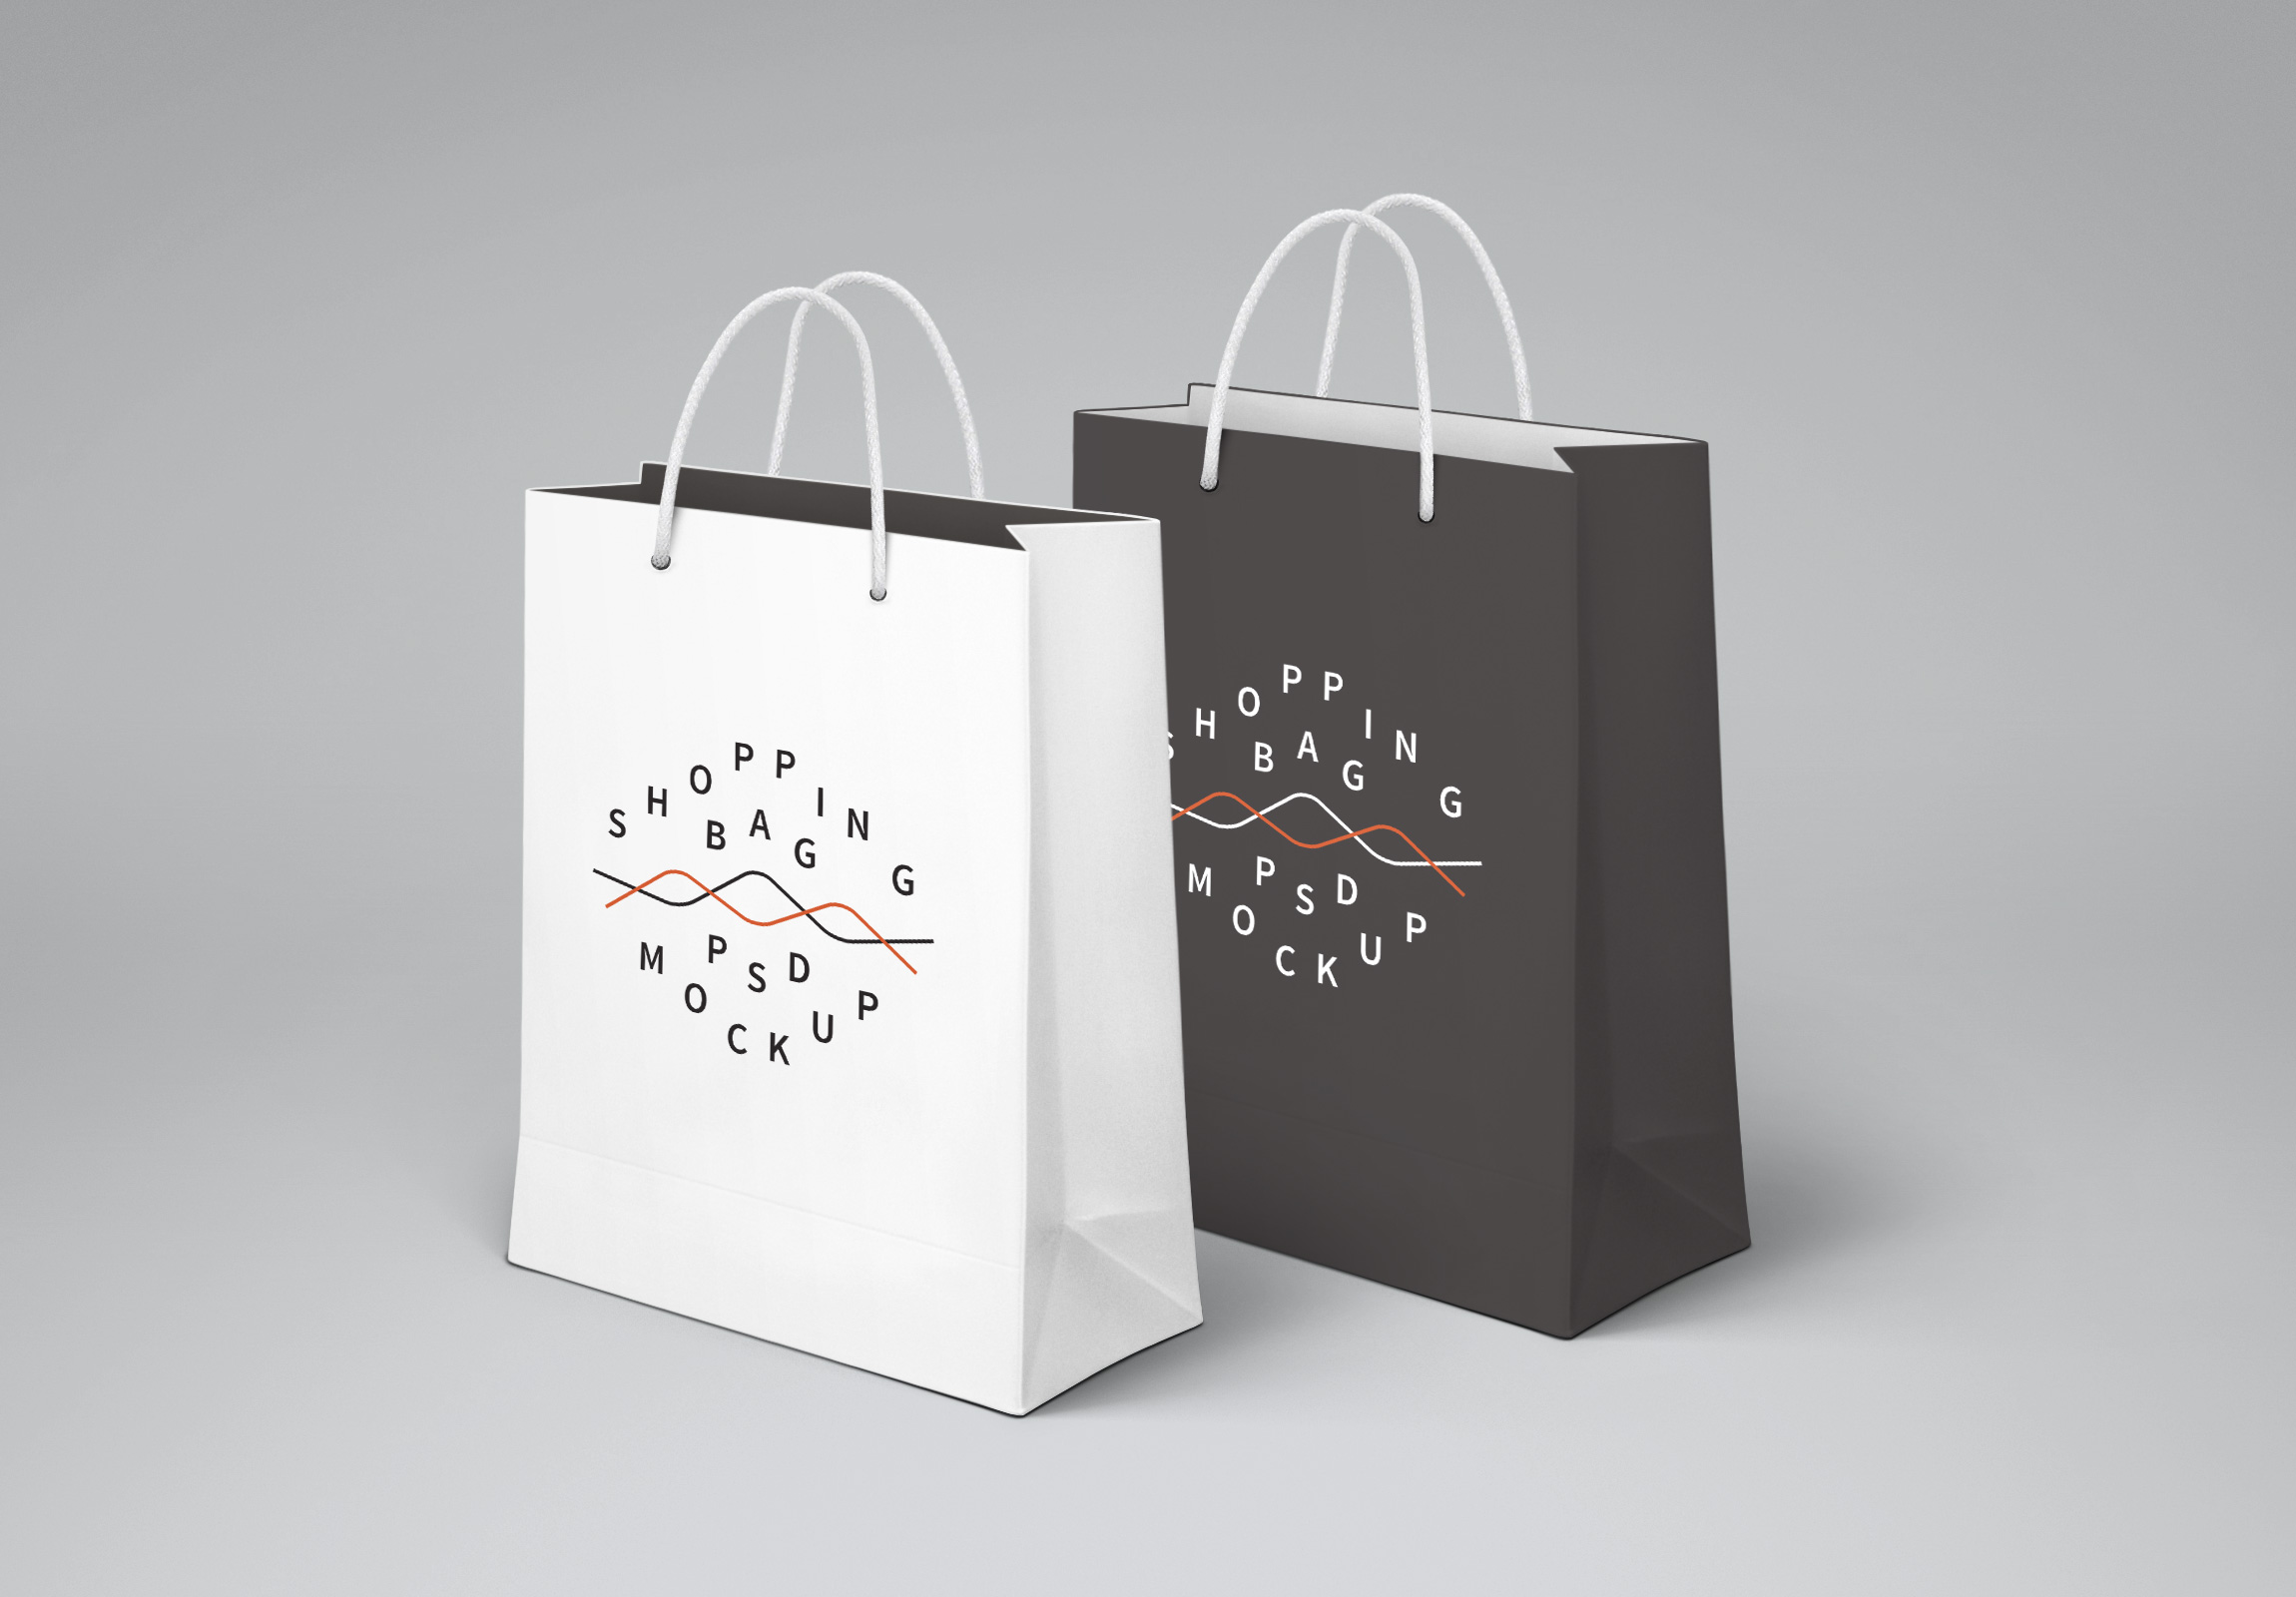 Free duffle bag mockup to showcase your design in a photorealistic style. Free Shopping Paper Bag Mockup Psd 2021 Daily Mockup